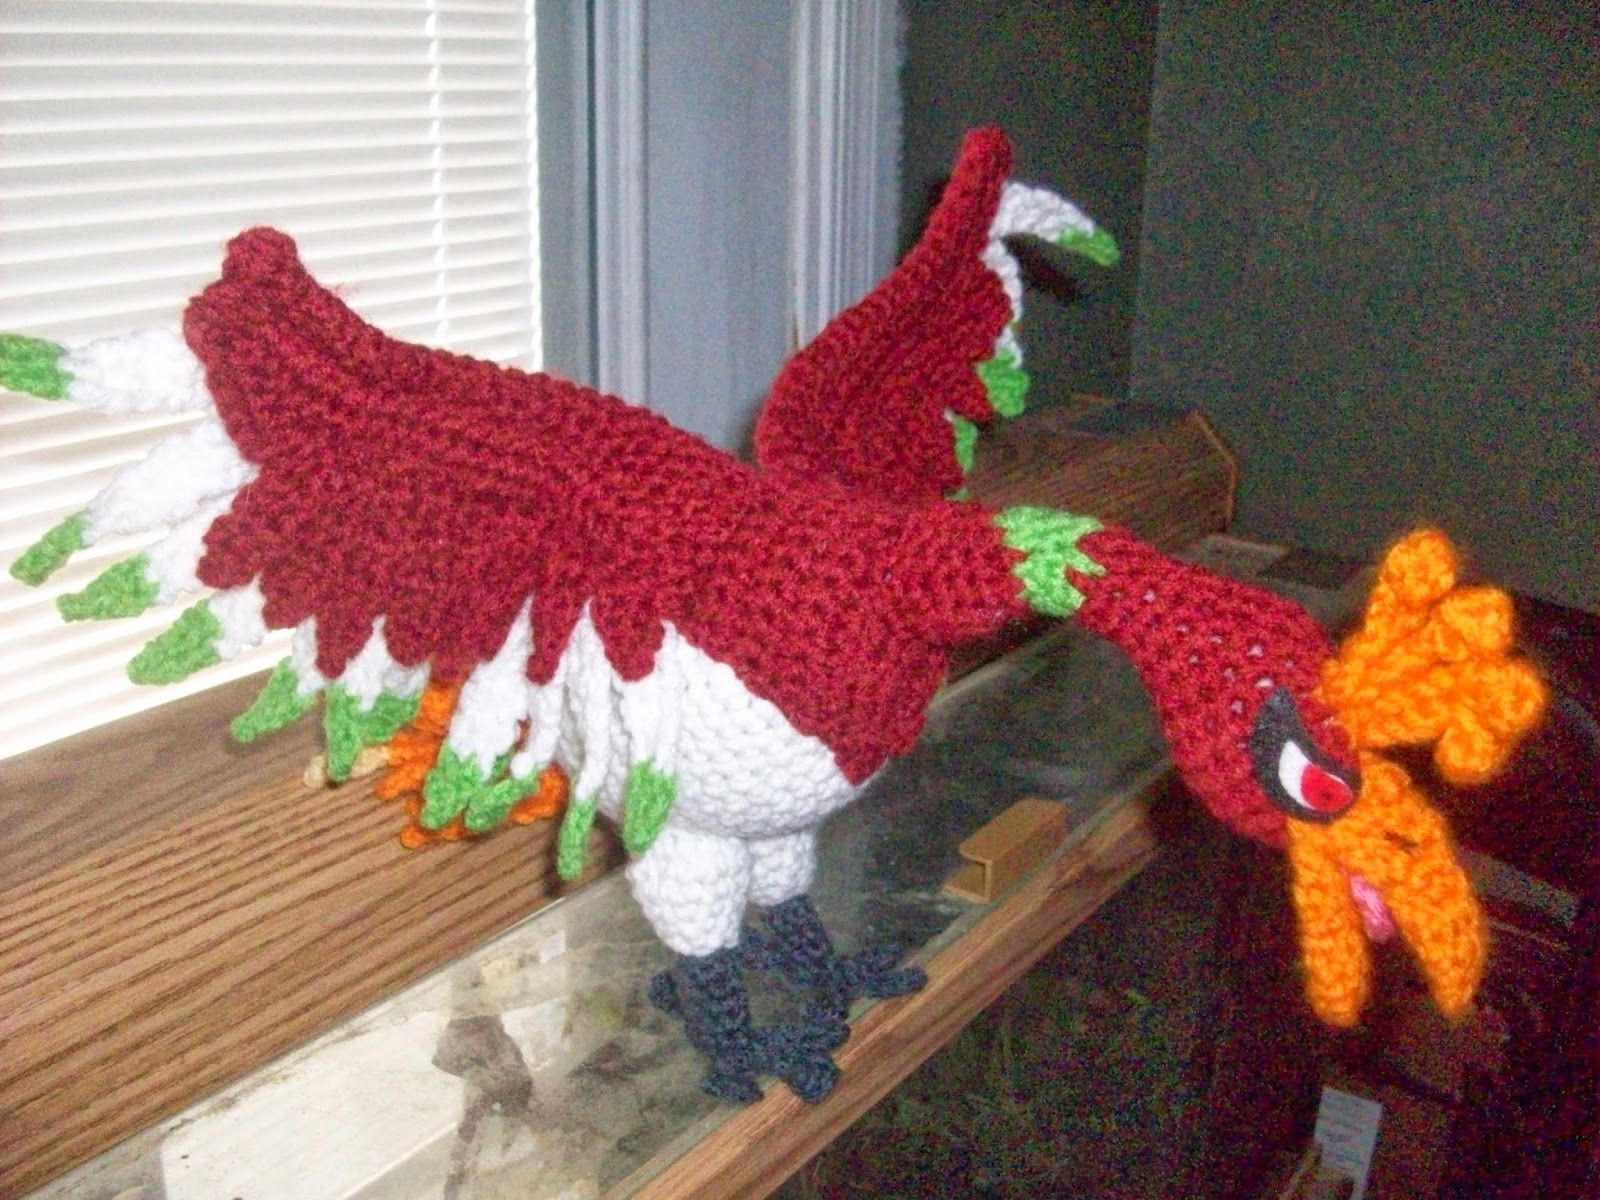 Kats Creations Crochet Free Pattern Site With 116 Free Pokemon